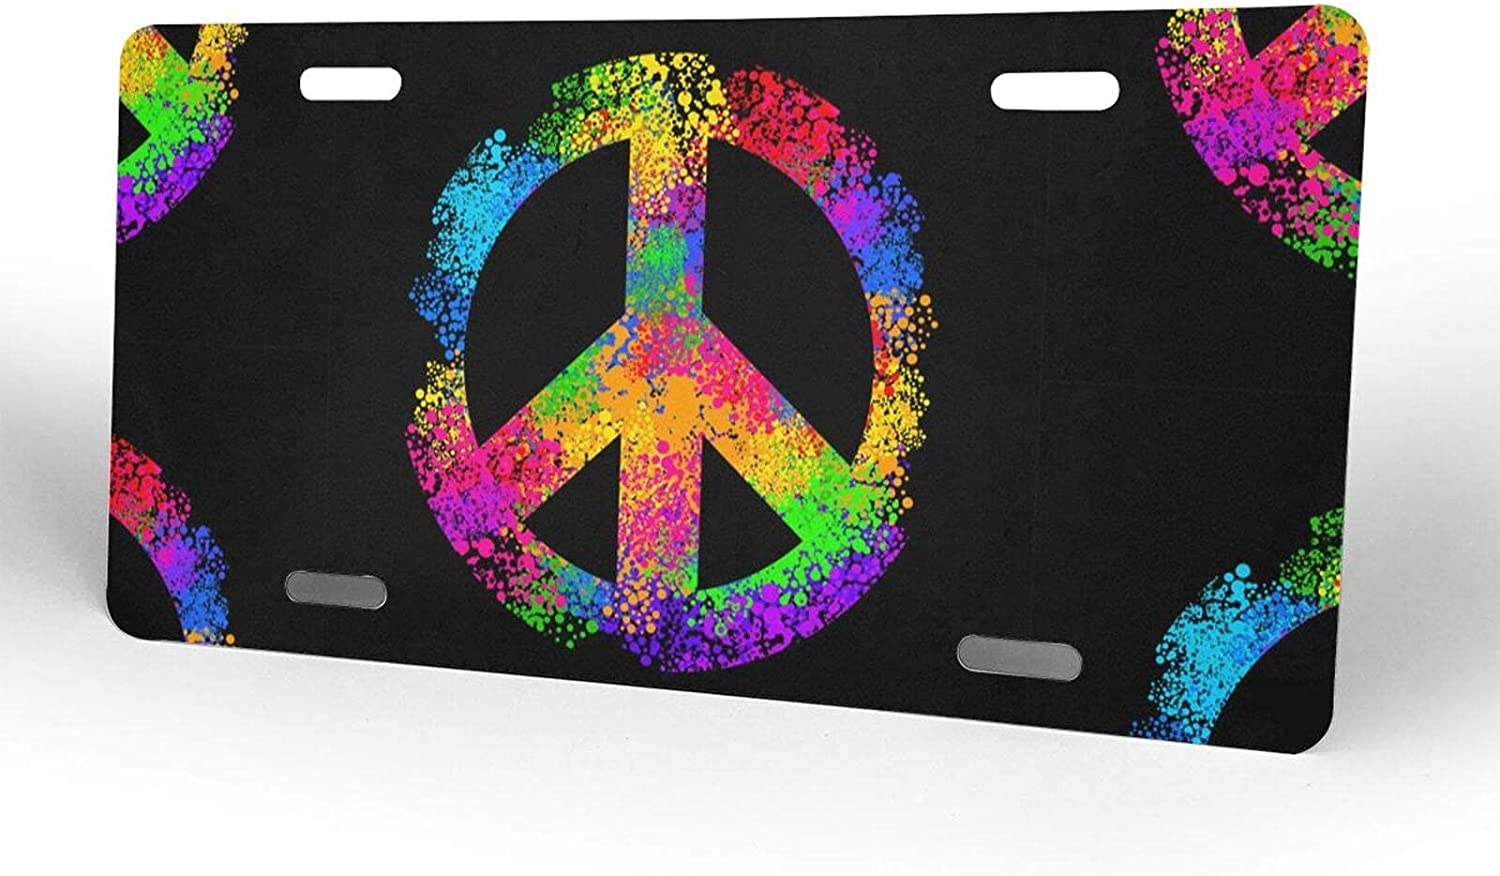 Luxury Victory Symbol License Plate Metal Cover Overseas parallel import regular item Novelty f